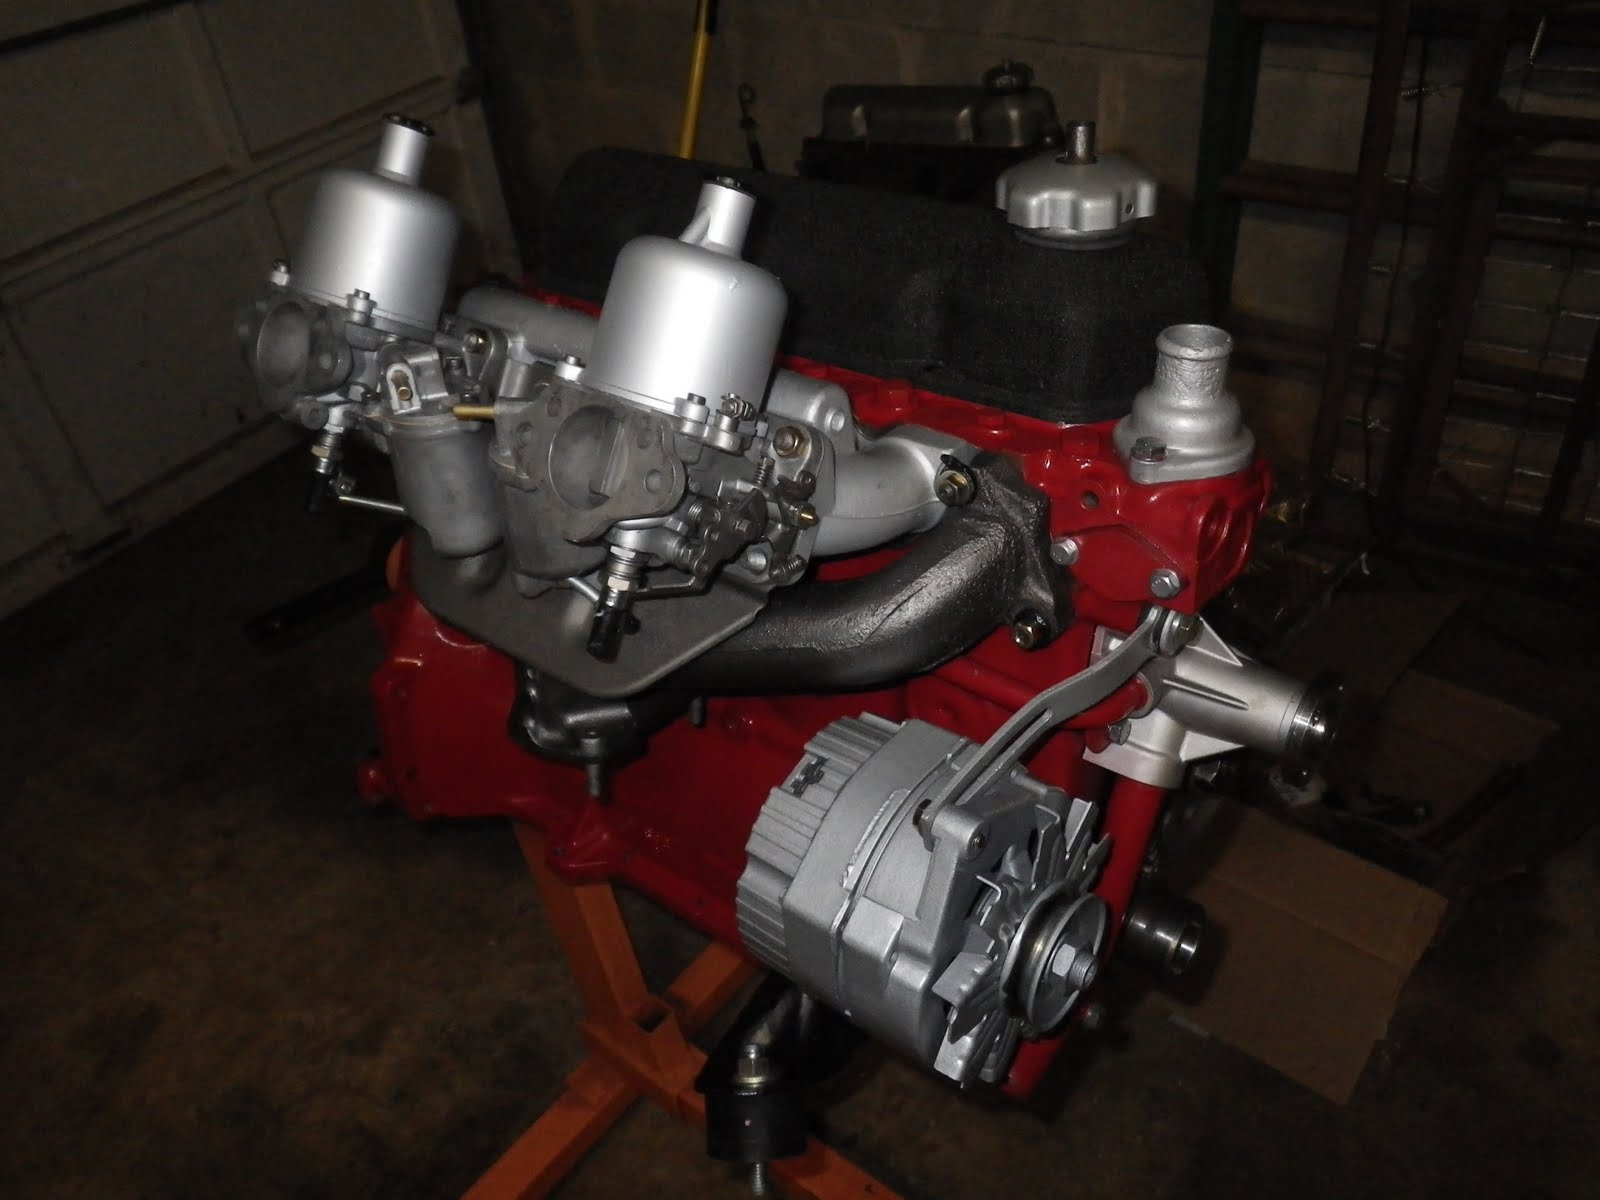 vintage 68 volvo 122s alternator swap turbobricks forums found an image of a delco 10si alternator on a b18 b20 using the swedish embassy kit